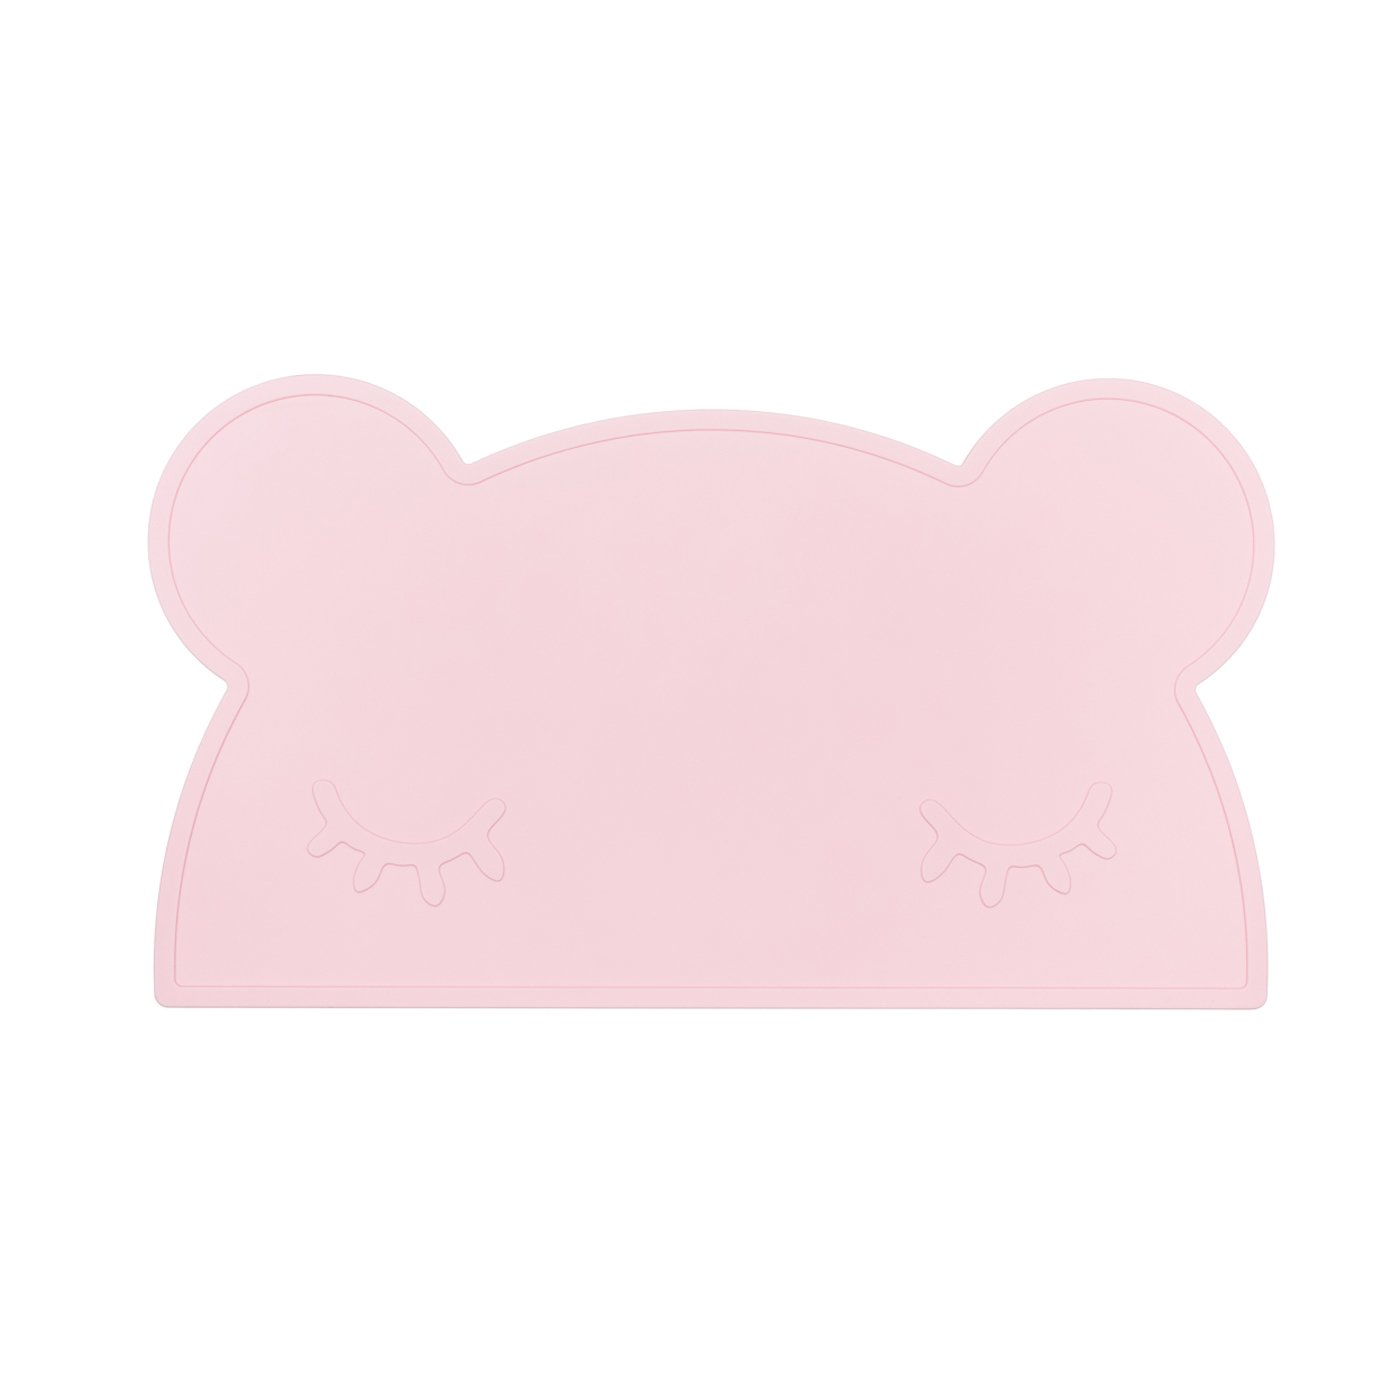 Bear Placemat (Powder Pink)